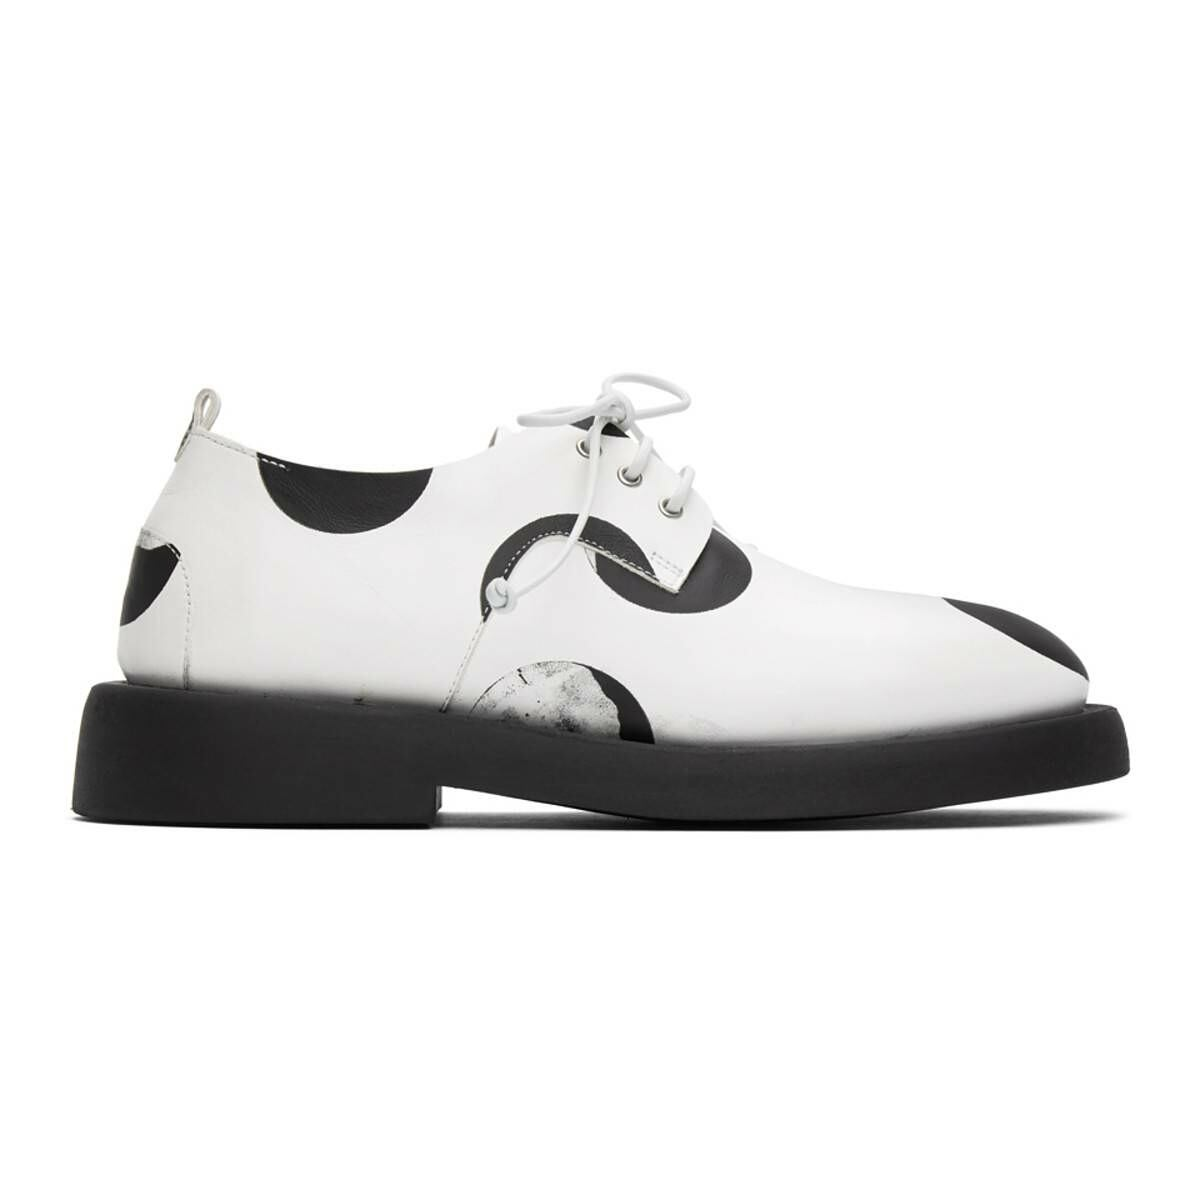 Marsell White and Black Dotted Gommello Derbys Ssense USA MEN Men SHOES Mens FORMAL SHOES